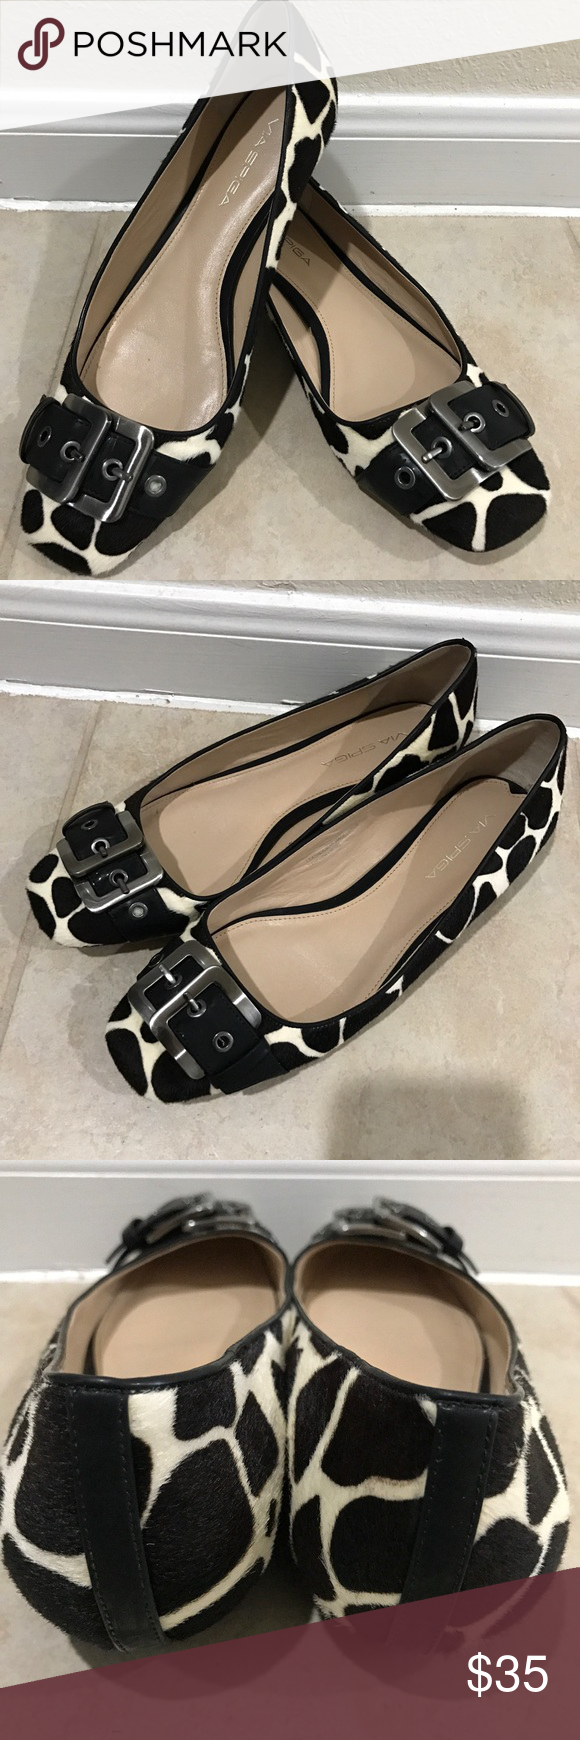 """VIA SPIGA Flats ⚡️FLASH SALE...THIS WEEK ONLY⚡️                        Pre-Owned """"VIA SPIGA"""" Flats.  In very good condition.  Leather/man inner and outter material.  Color: Black/White Size: 8B. Via Spiga Shoes Flats & Loafers"""